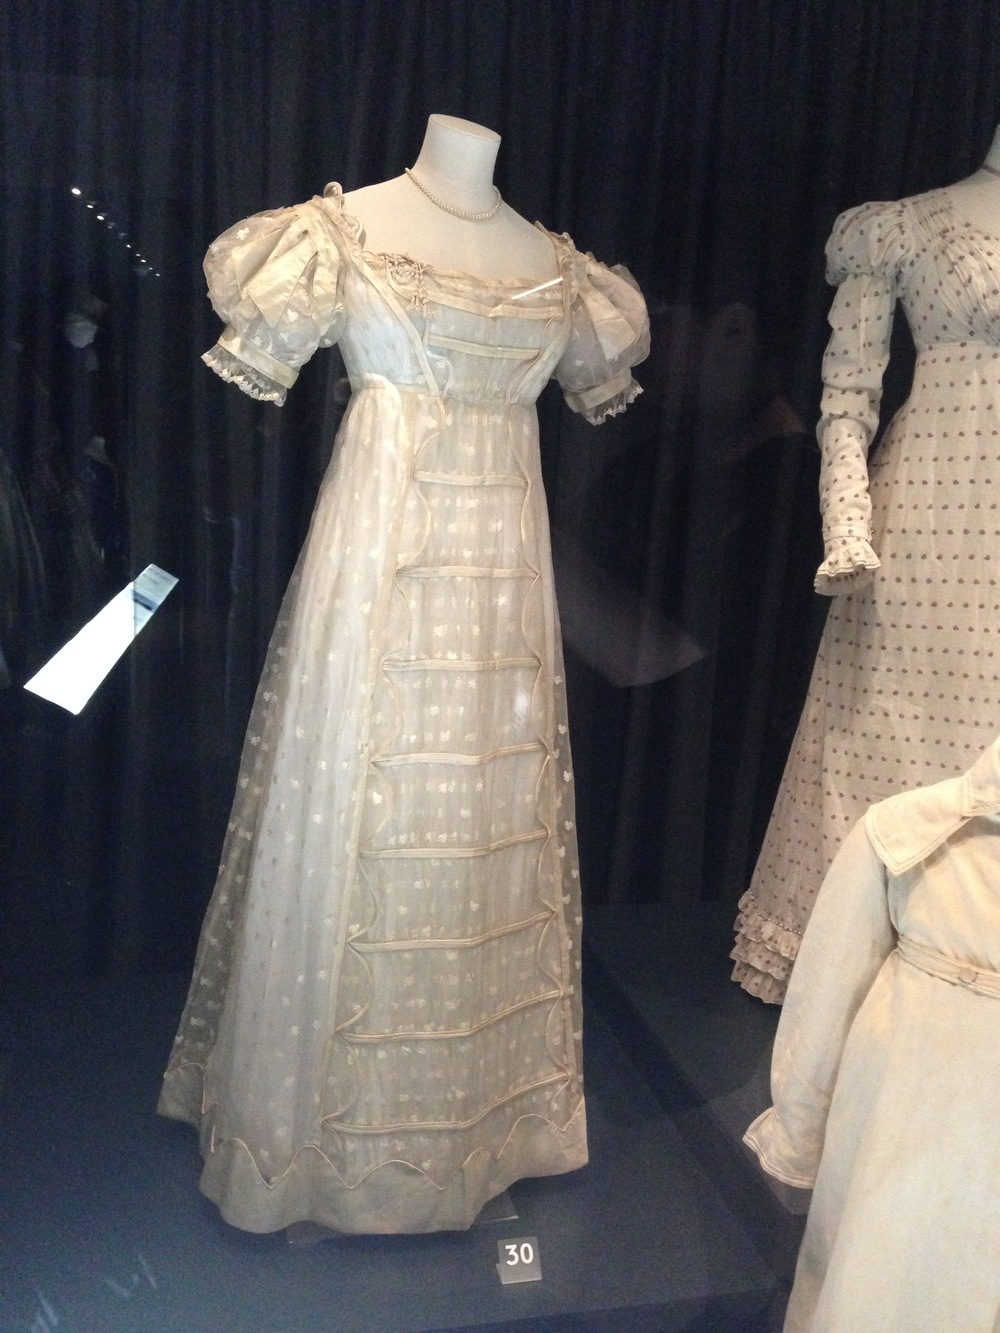 Another lovely Regency dress - this one is a formal dress, most likely a wedding dress.